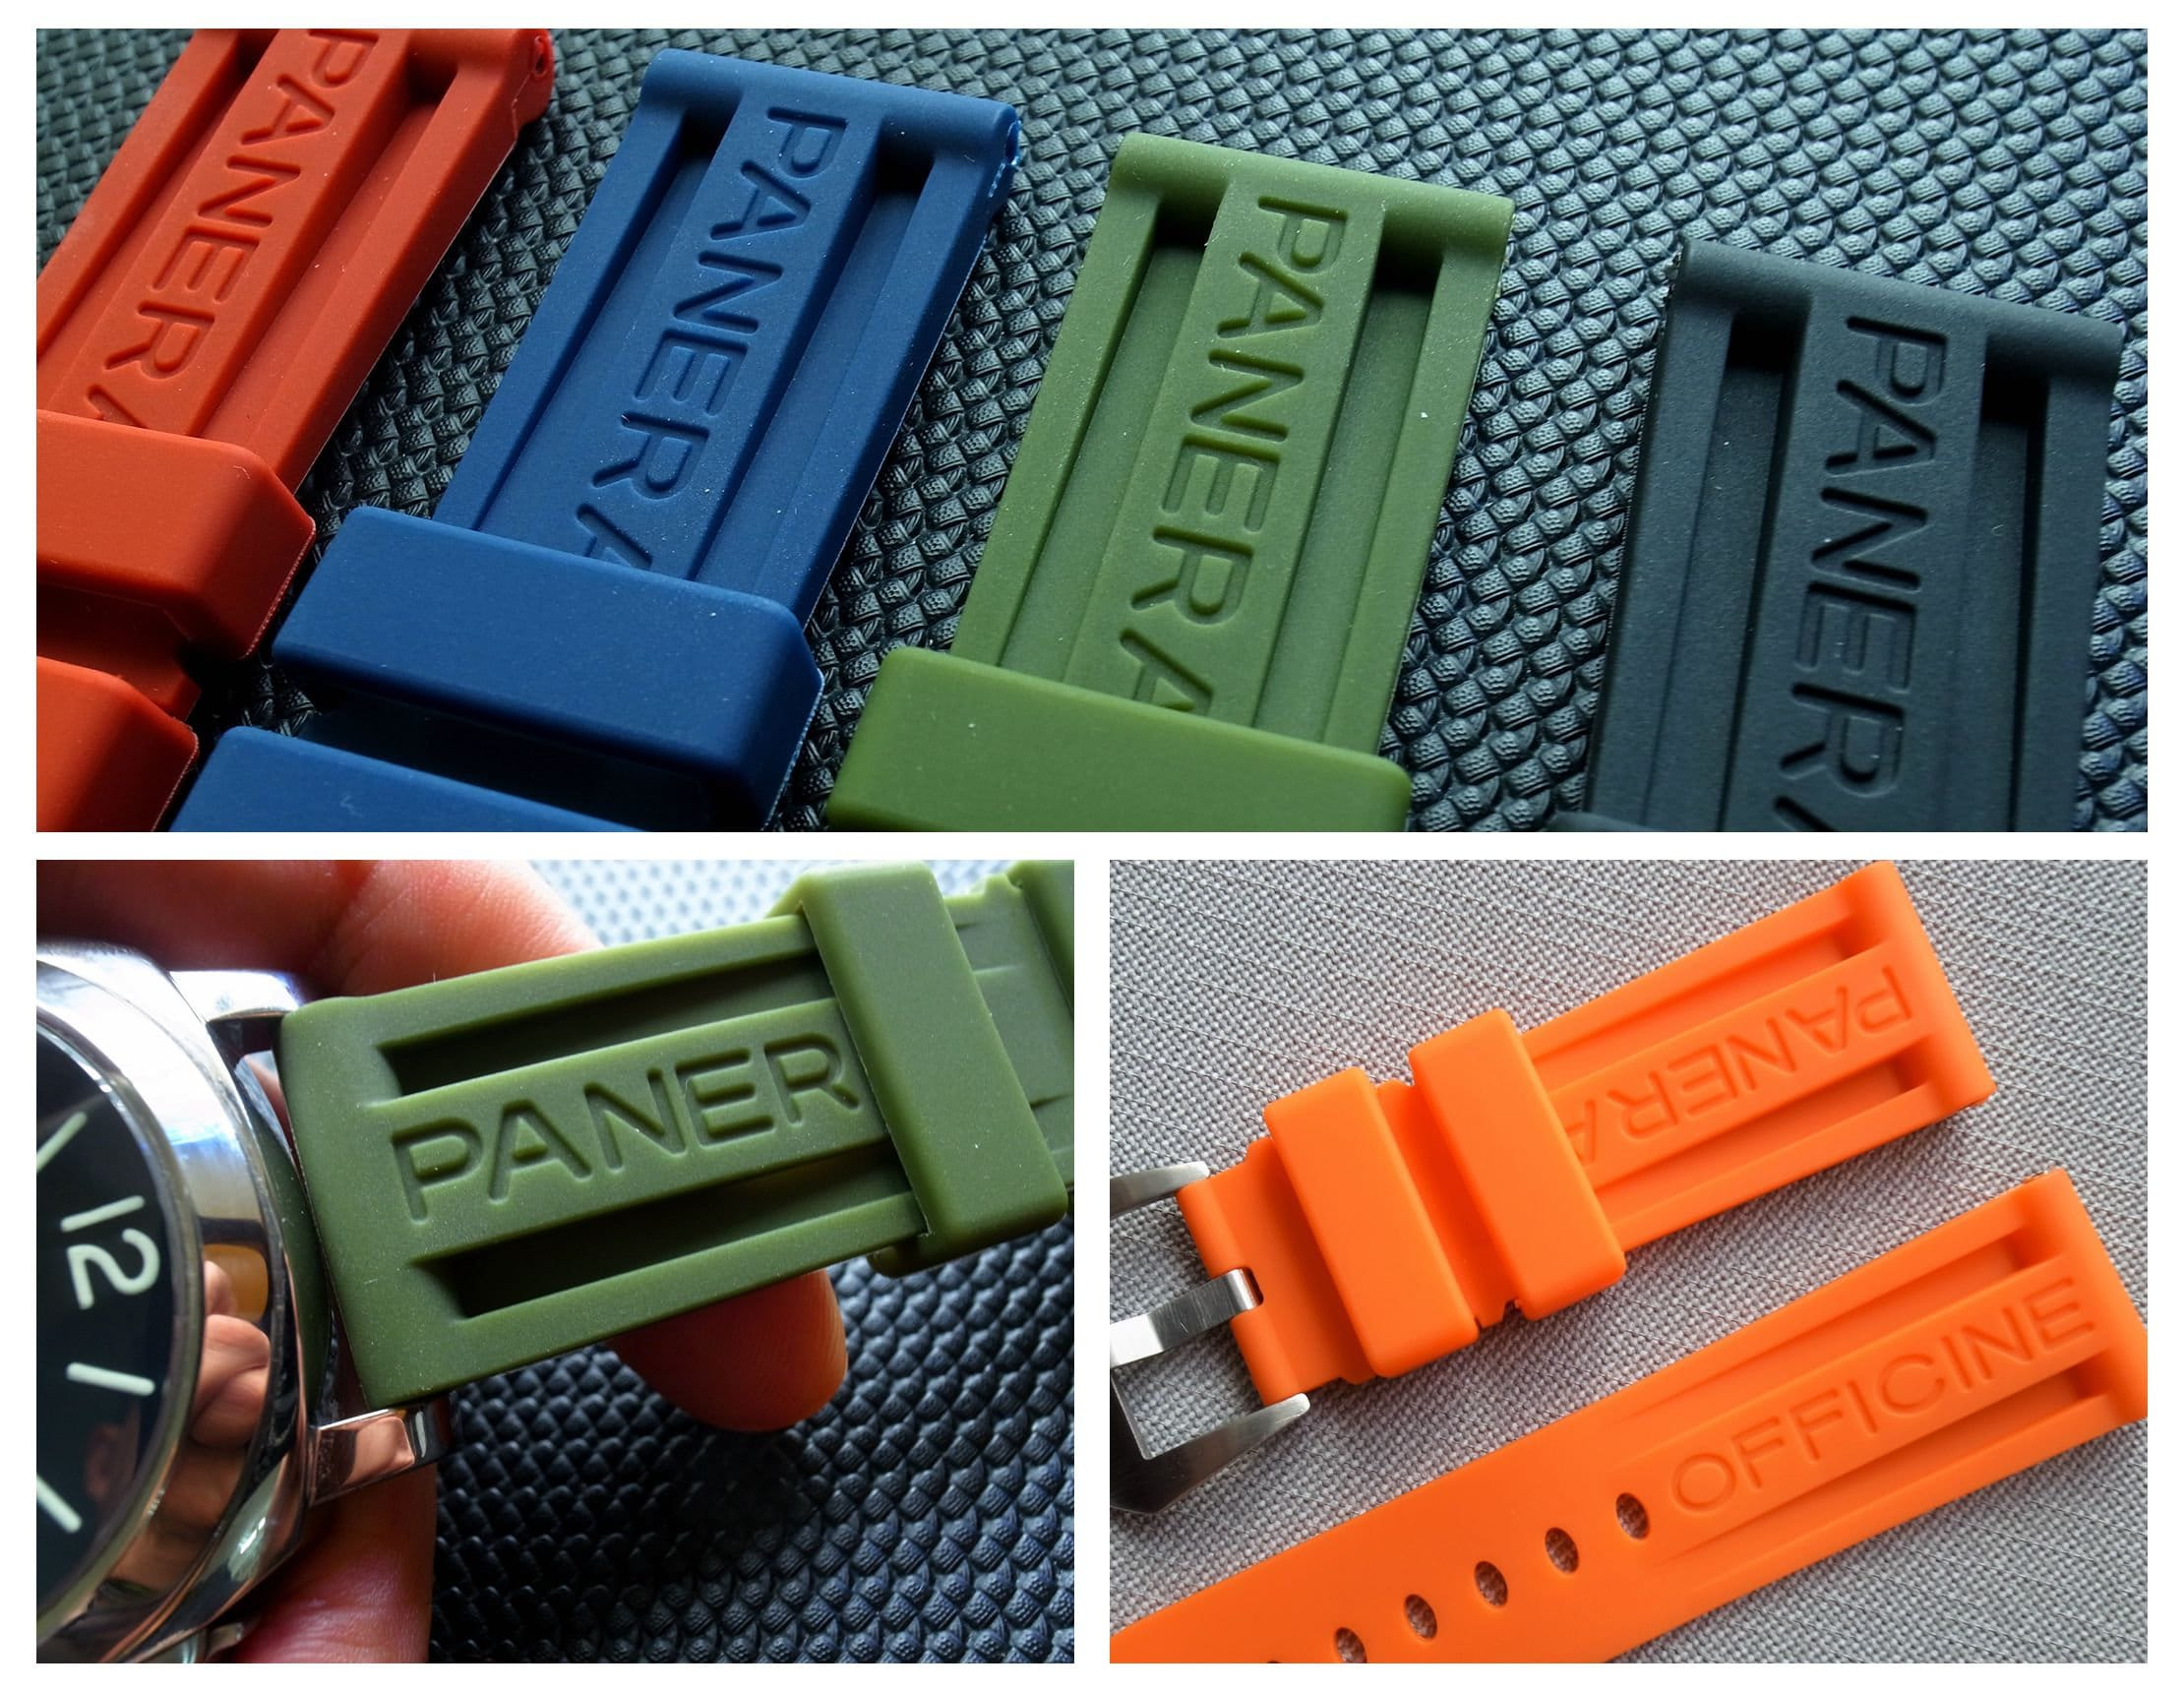 24mm Rubber Watch Band Strap with Buckle fit for Panerai